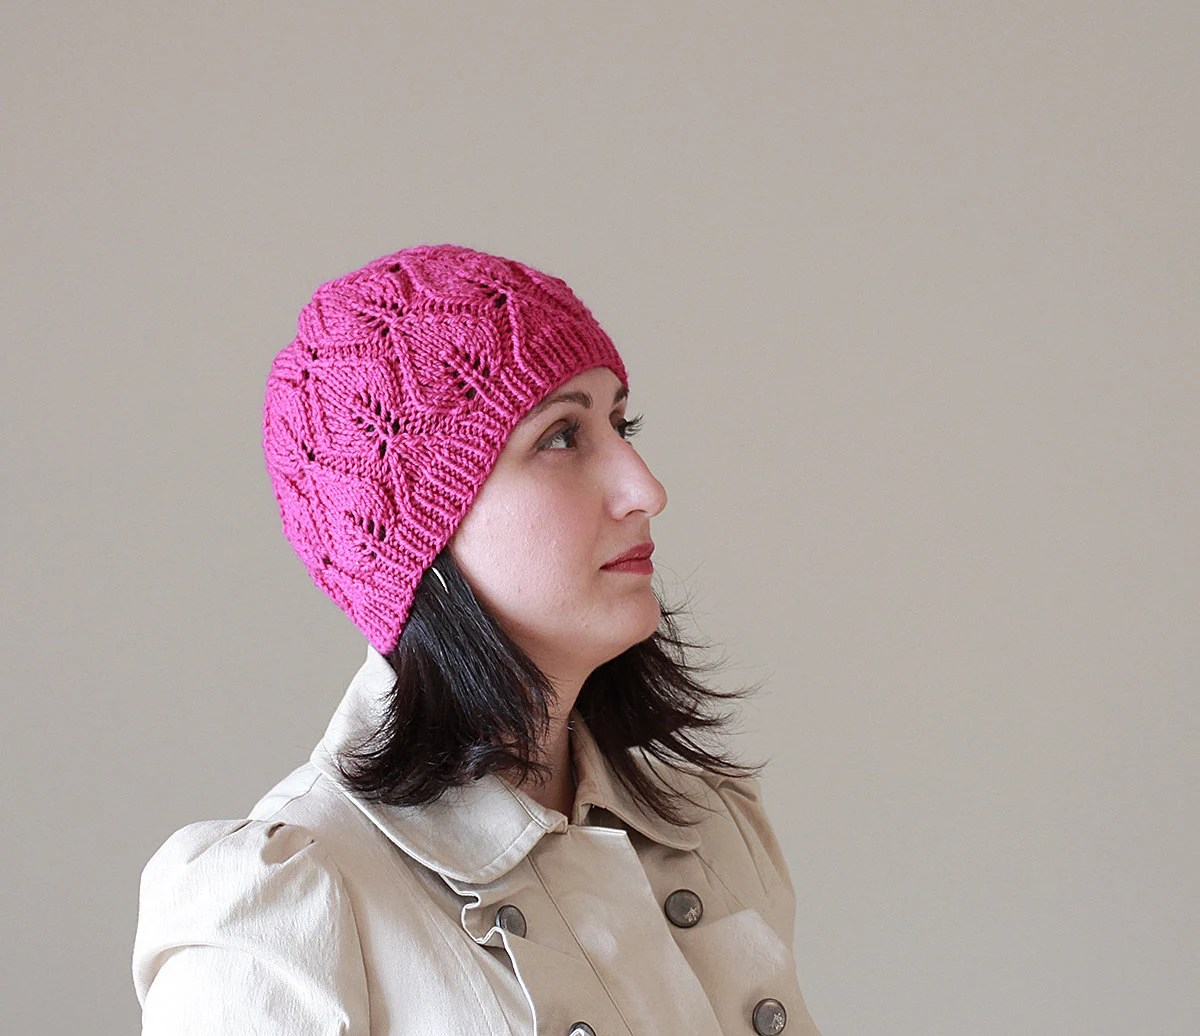 Knit Hat for Women - Orchid Rose pink color fashion - Adult knit beret, Handmade - SENNURSASA